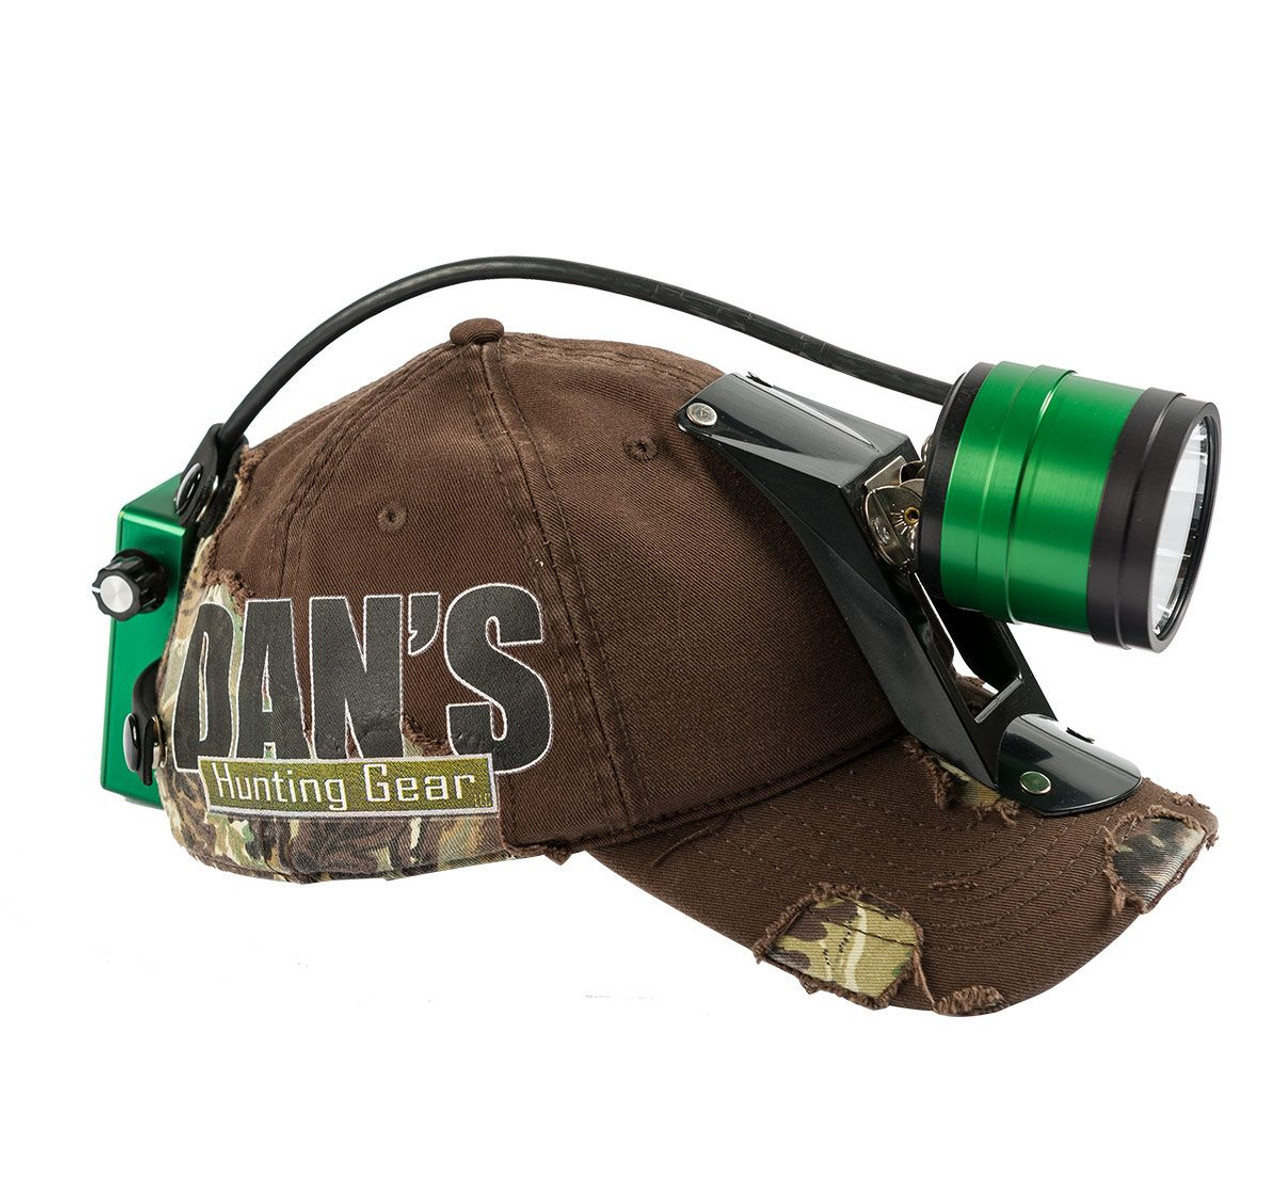 Big Dog Genesis Light, Dan's hunting gear